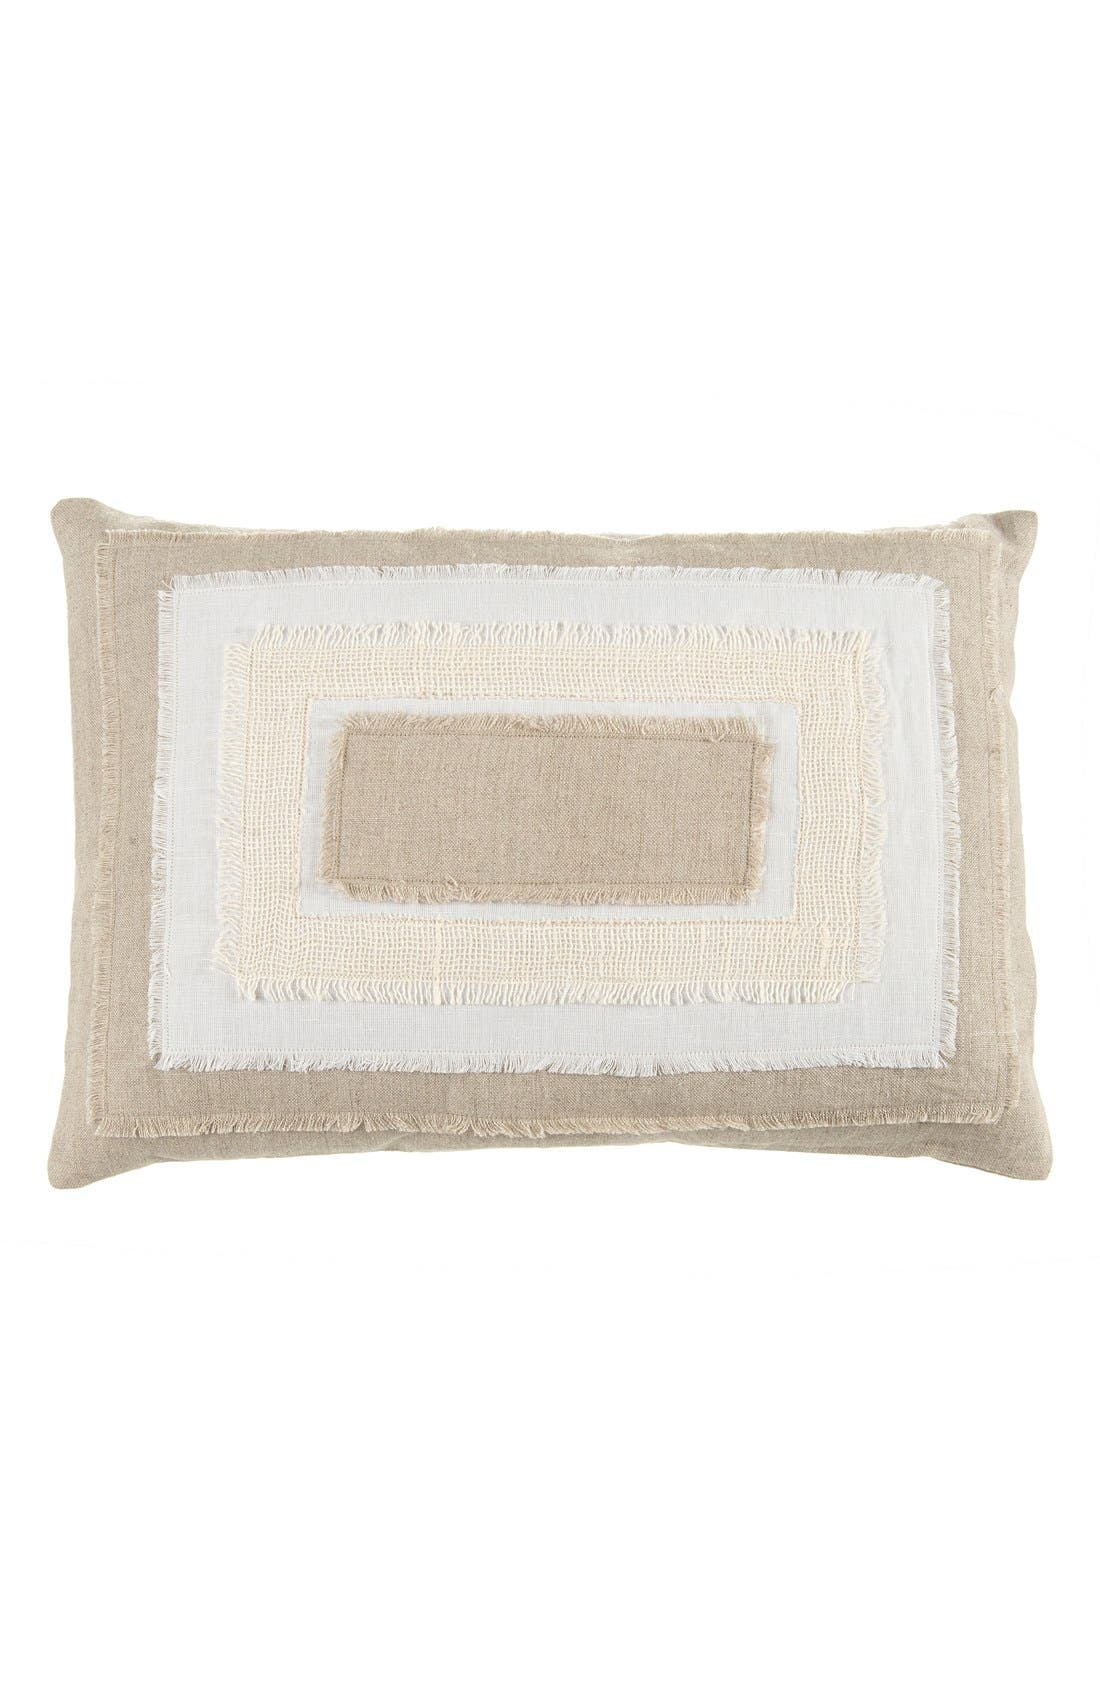 BEEKMAN 1802 'Stacked' Pillow